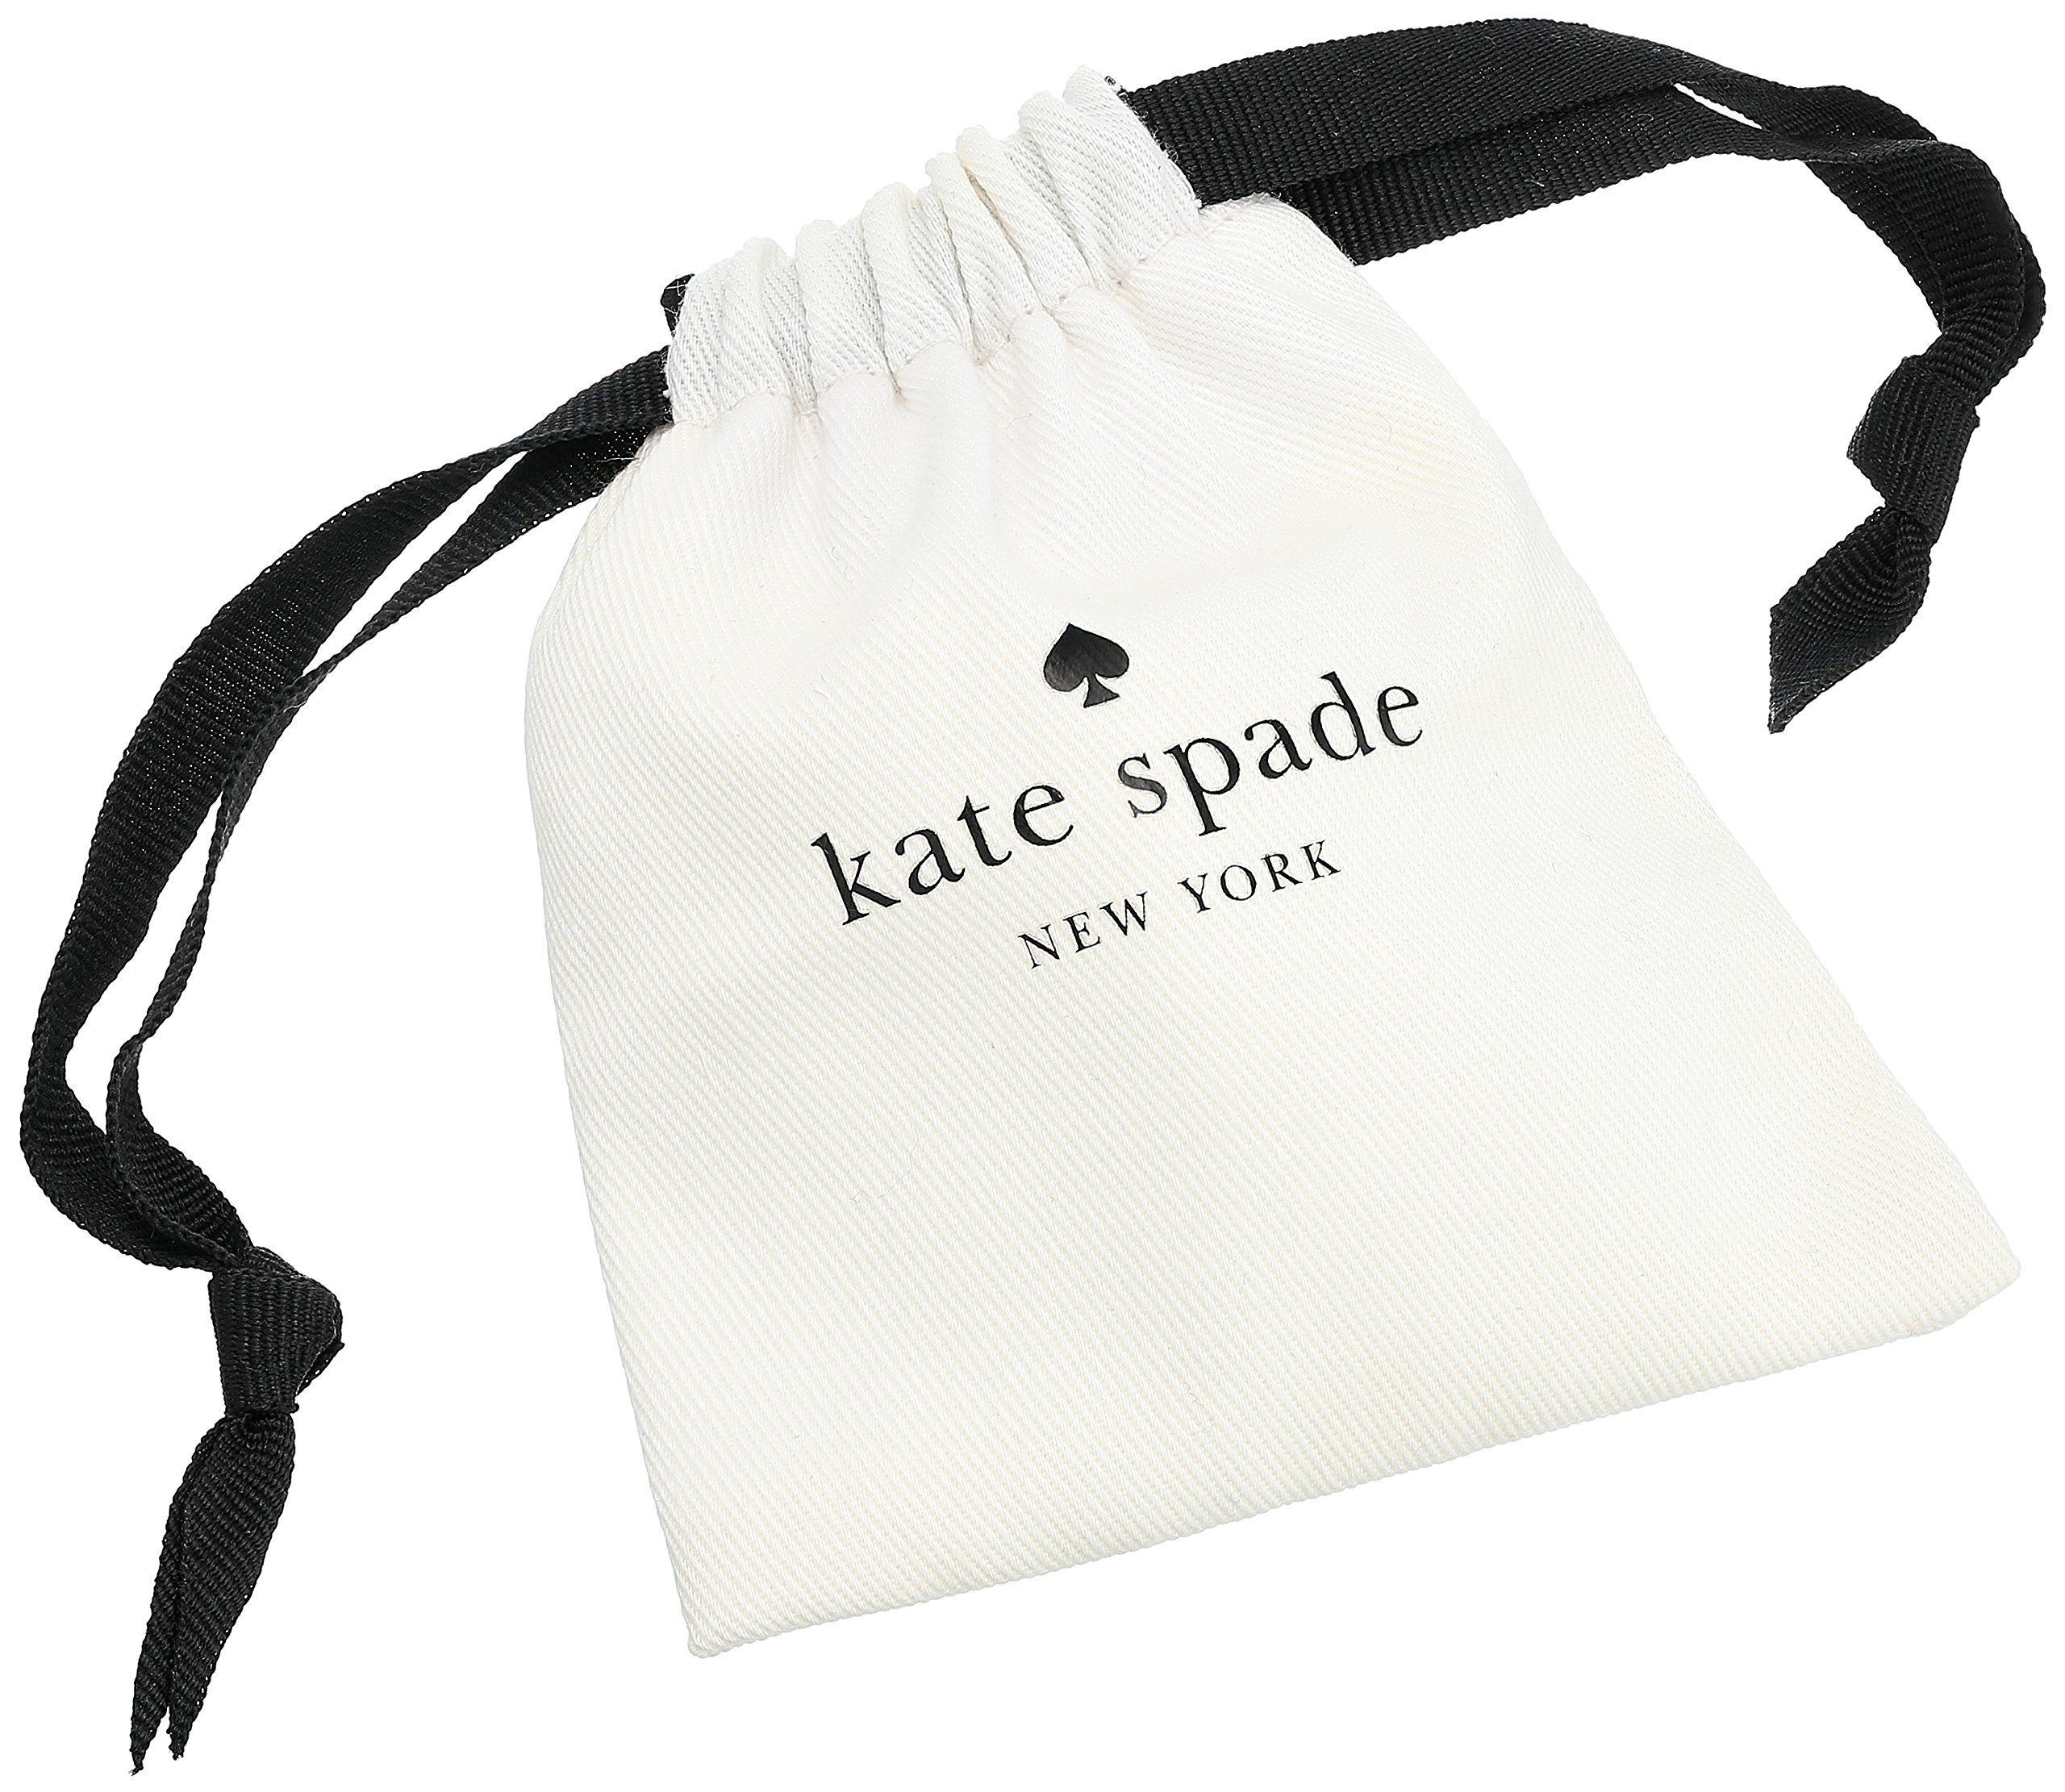 kate spade new york Golden Girl Short Gold Necklace by Kate Spade New York (Image #3)